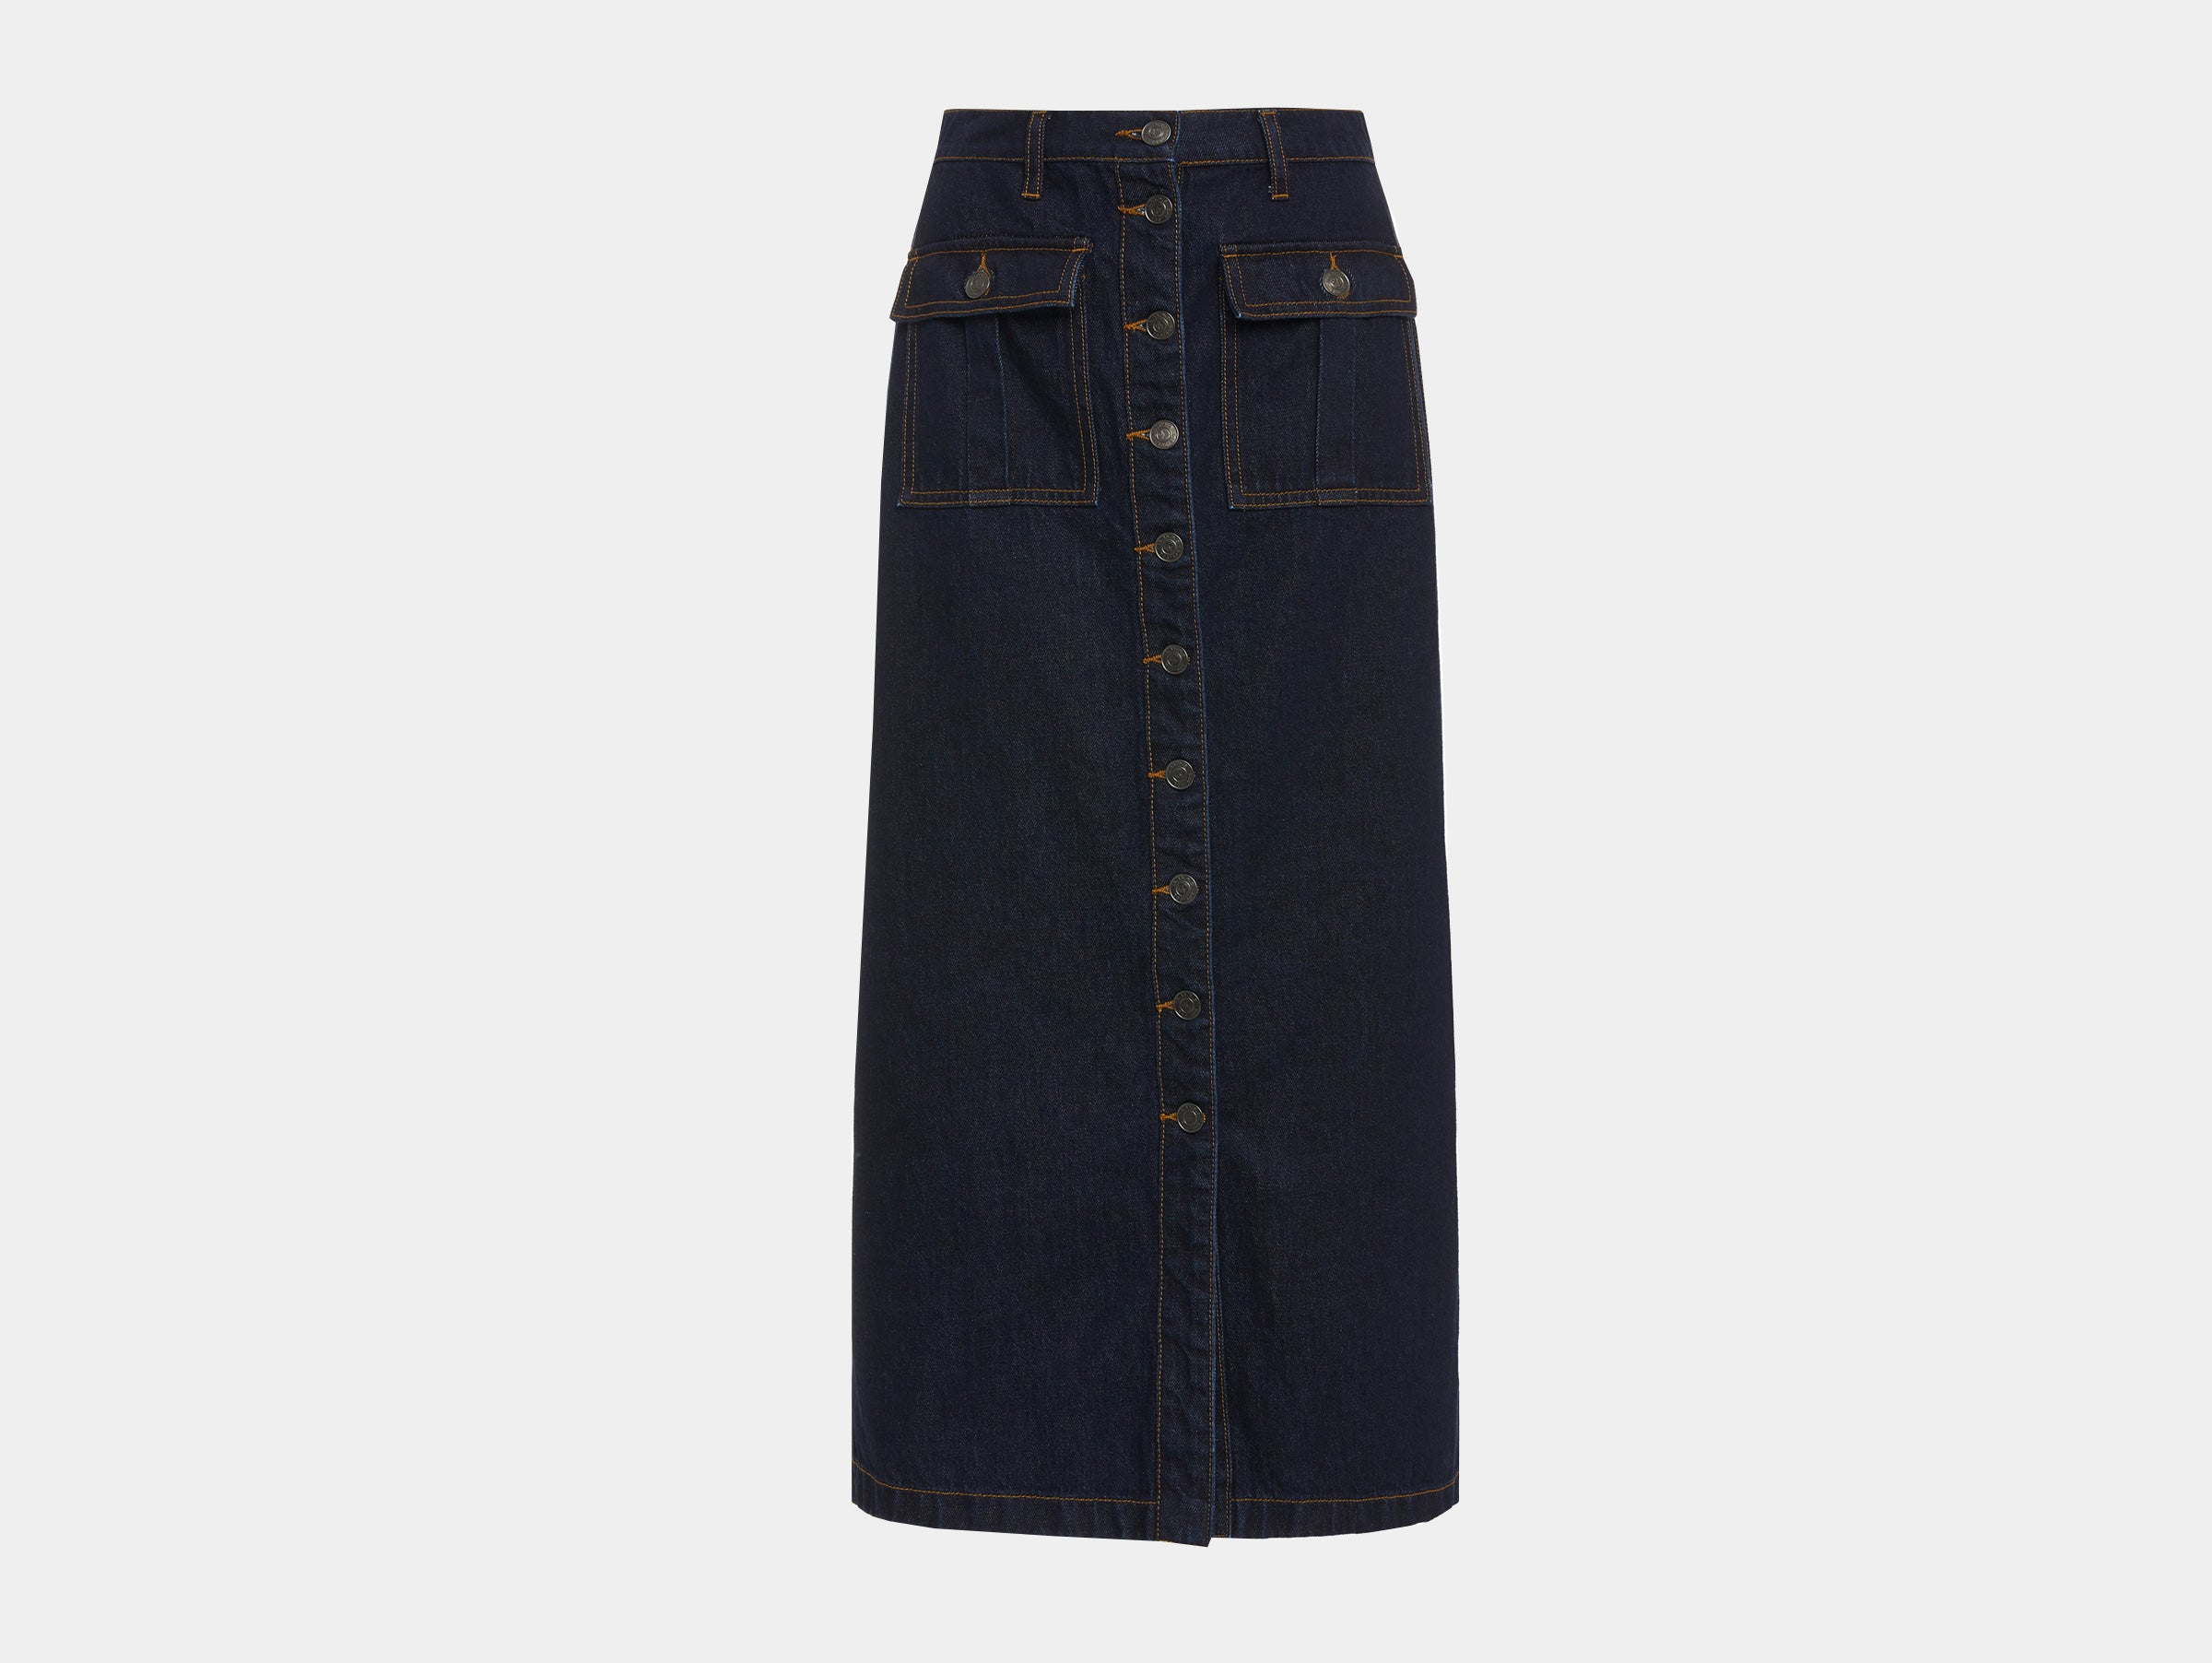 Current Elliot - Denim blue 'The surfview' midi skirt